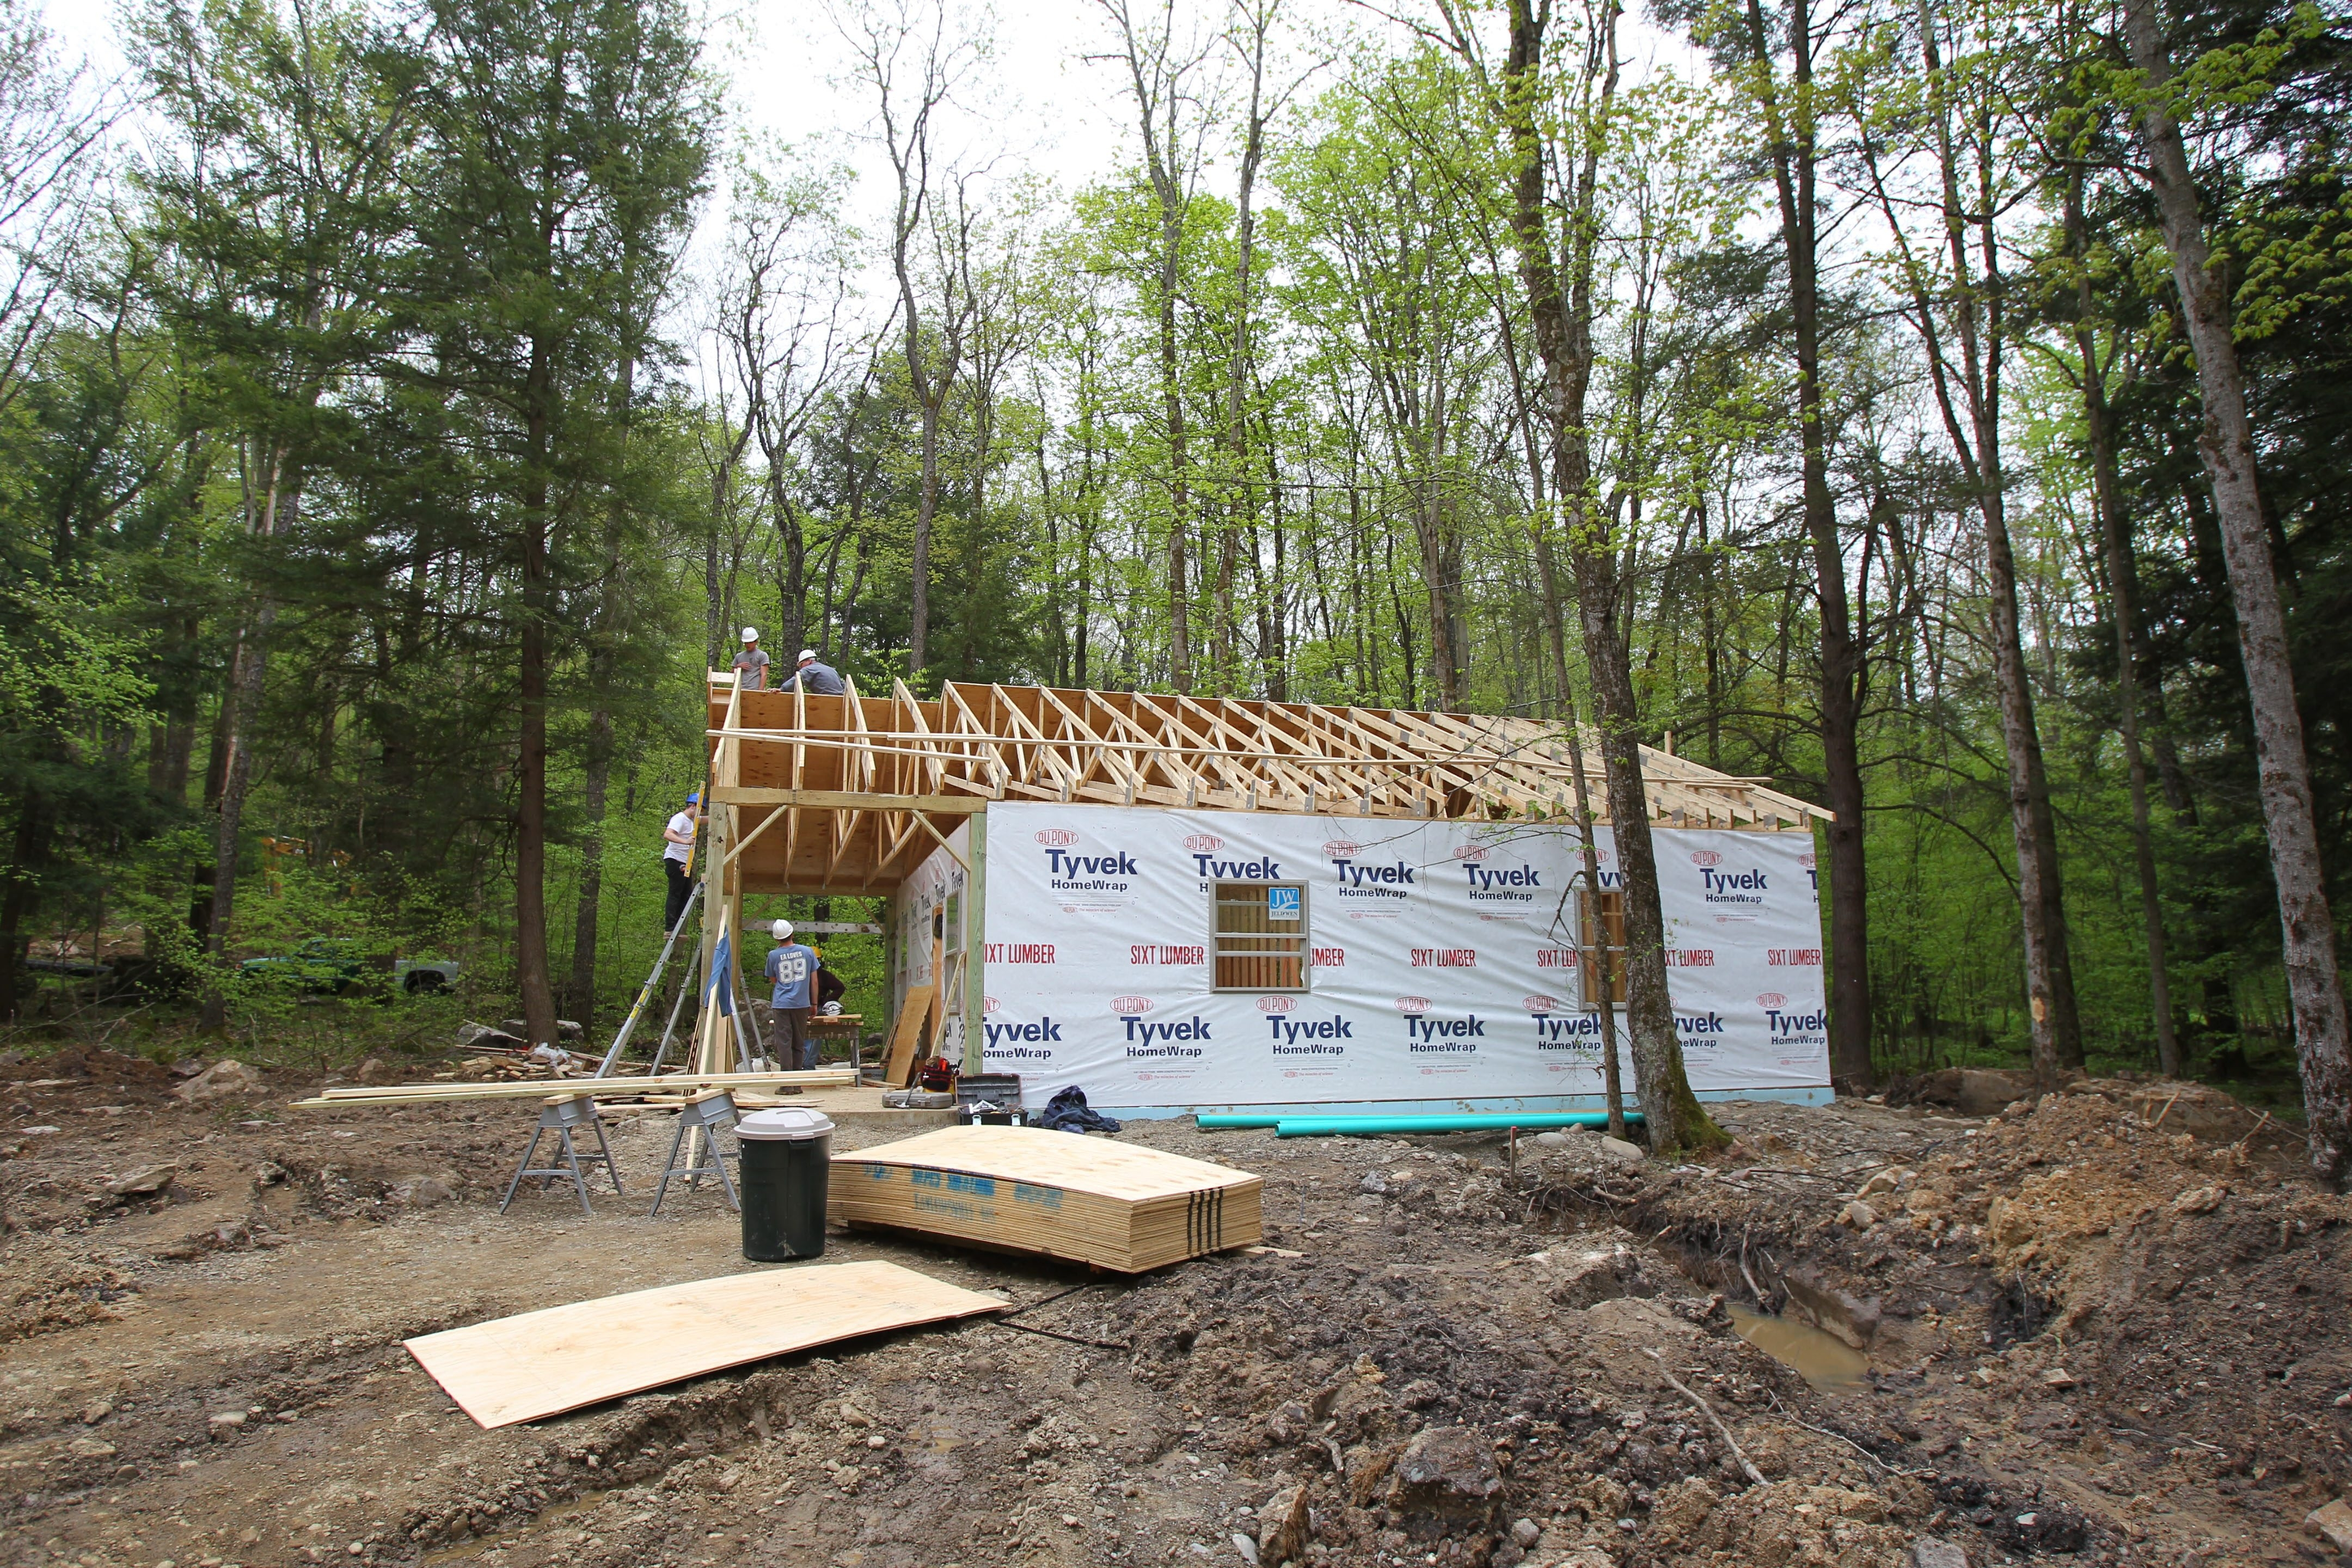 Construction was underway on the new cottages at Allegany State Park in Salamanca on May 20. Some 28 upscale cabins are being built in the park, and they're expected to be available for rental by the end of June.